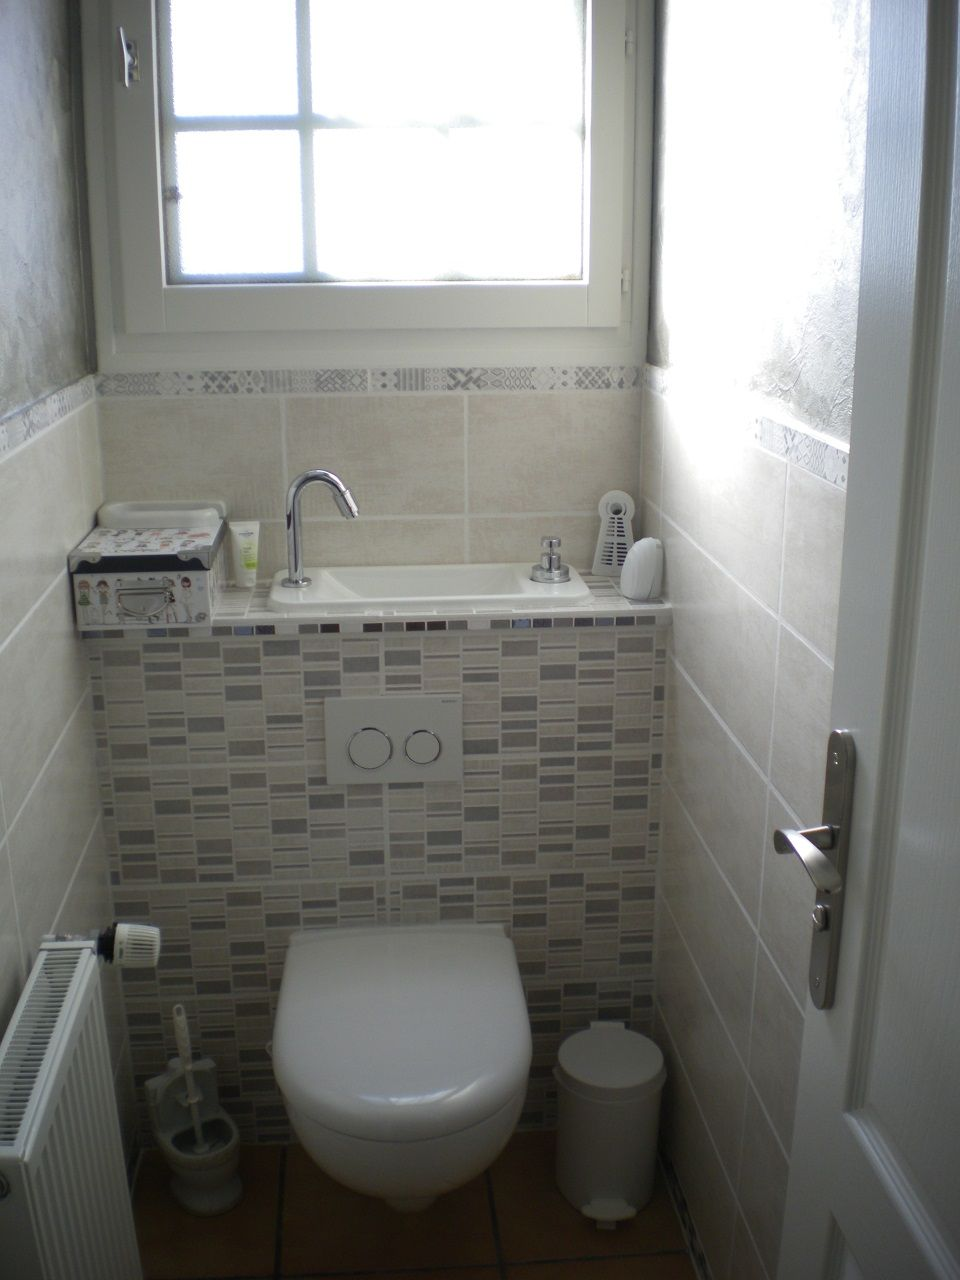 Design Toilet Gallery Toilets And Sinks Small Space Bathroom Small Toilet Room